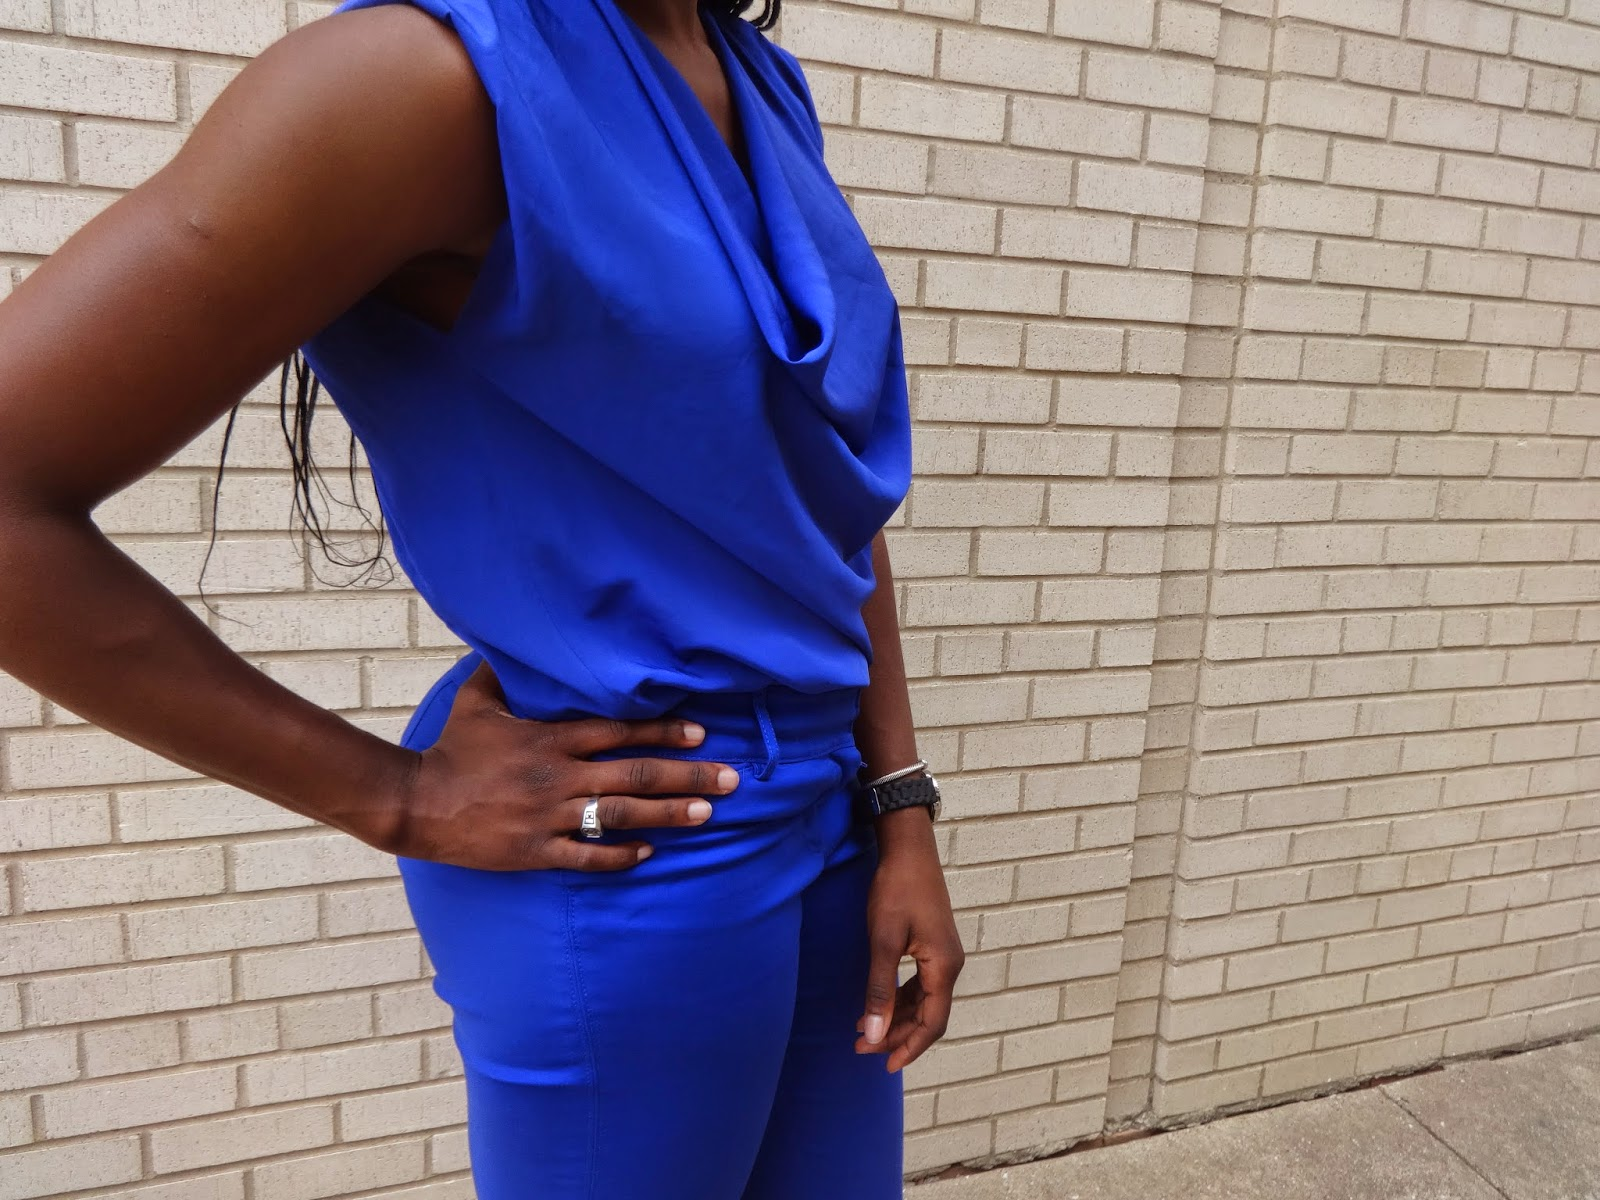 1d02422f27 Outfit Of The Day  Monochrome Blue - Dresses and Dumbbells